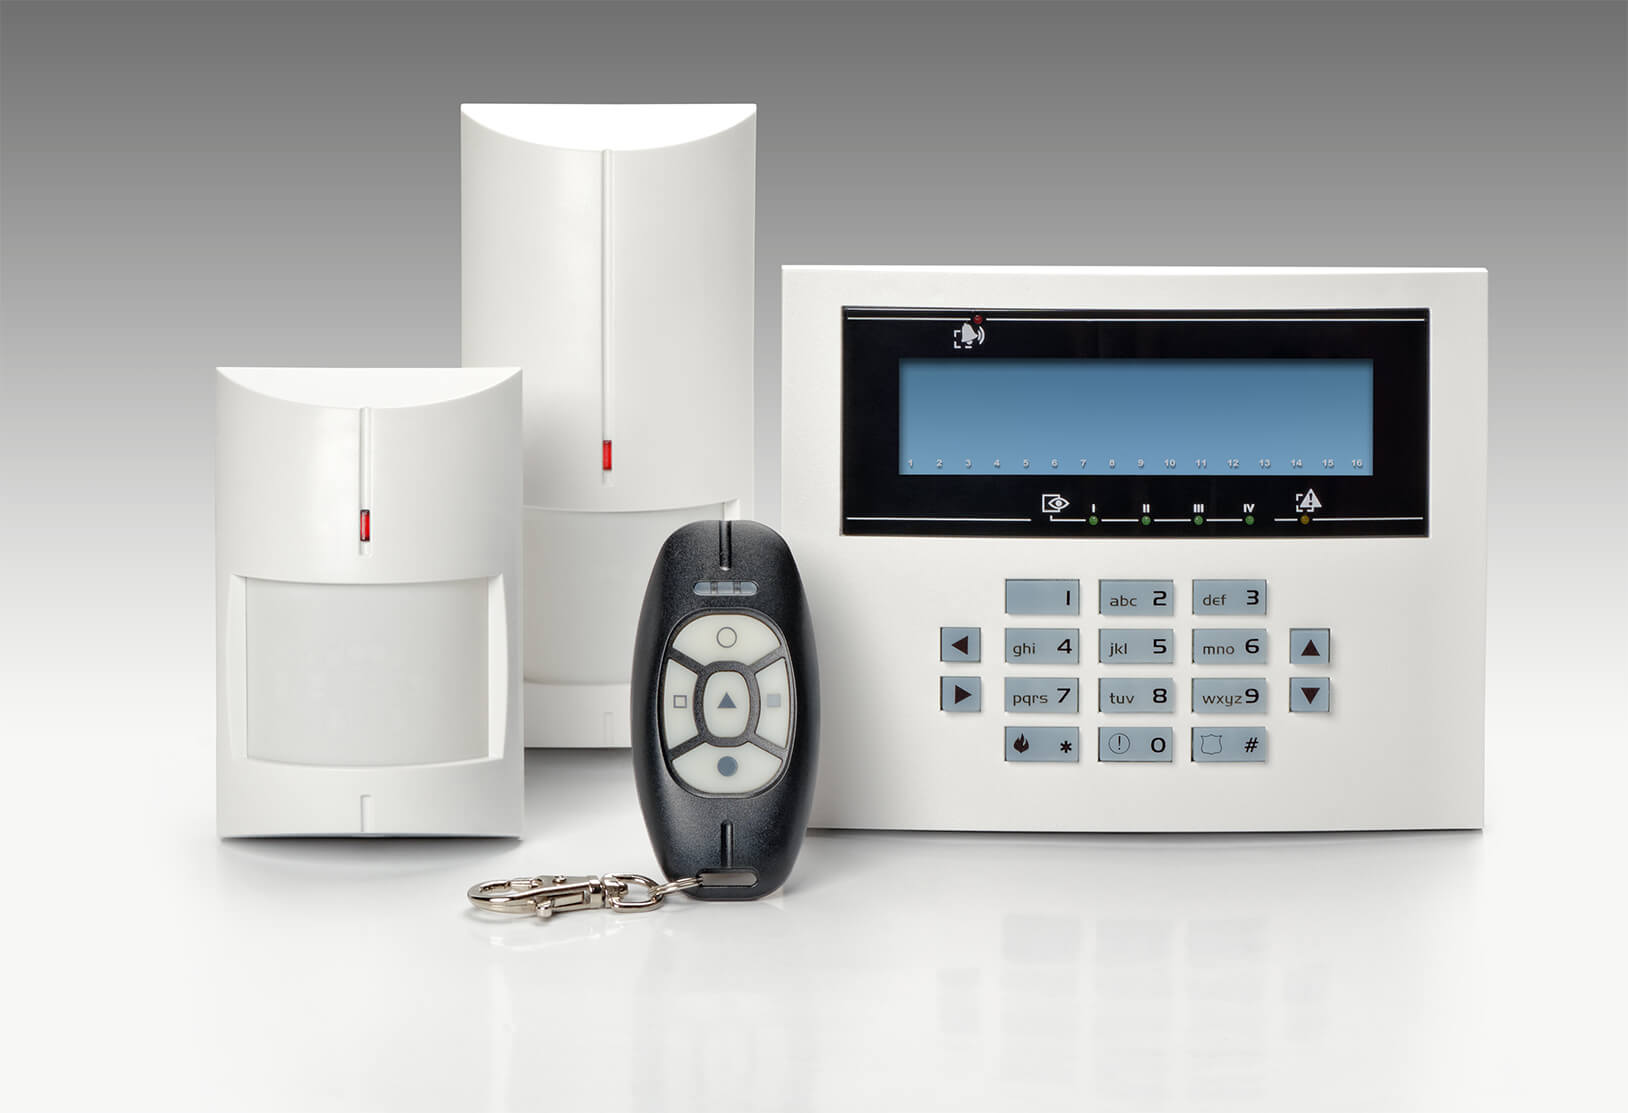 Business & Residential NACOSS Approved Burglar Alarms In Roehampton SW15 - Local Roehampton SW15 security company.Call 02078872244 - Dedicated to Safety & Security. Companies, shops and homes ..